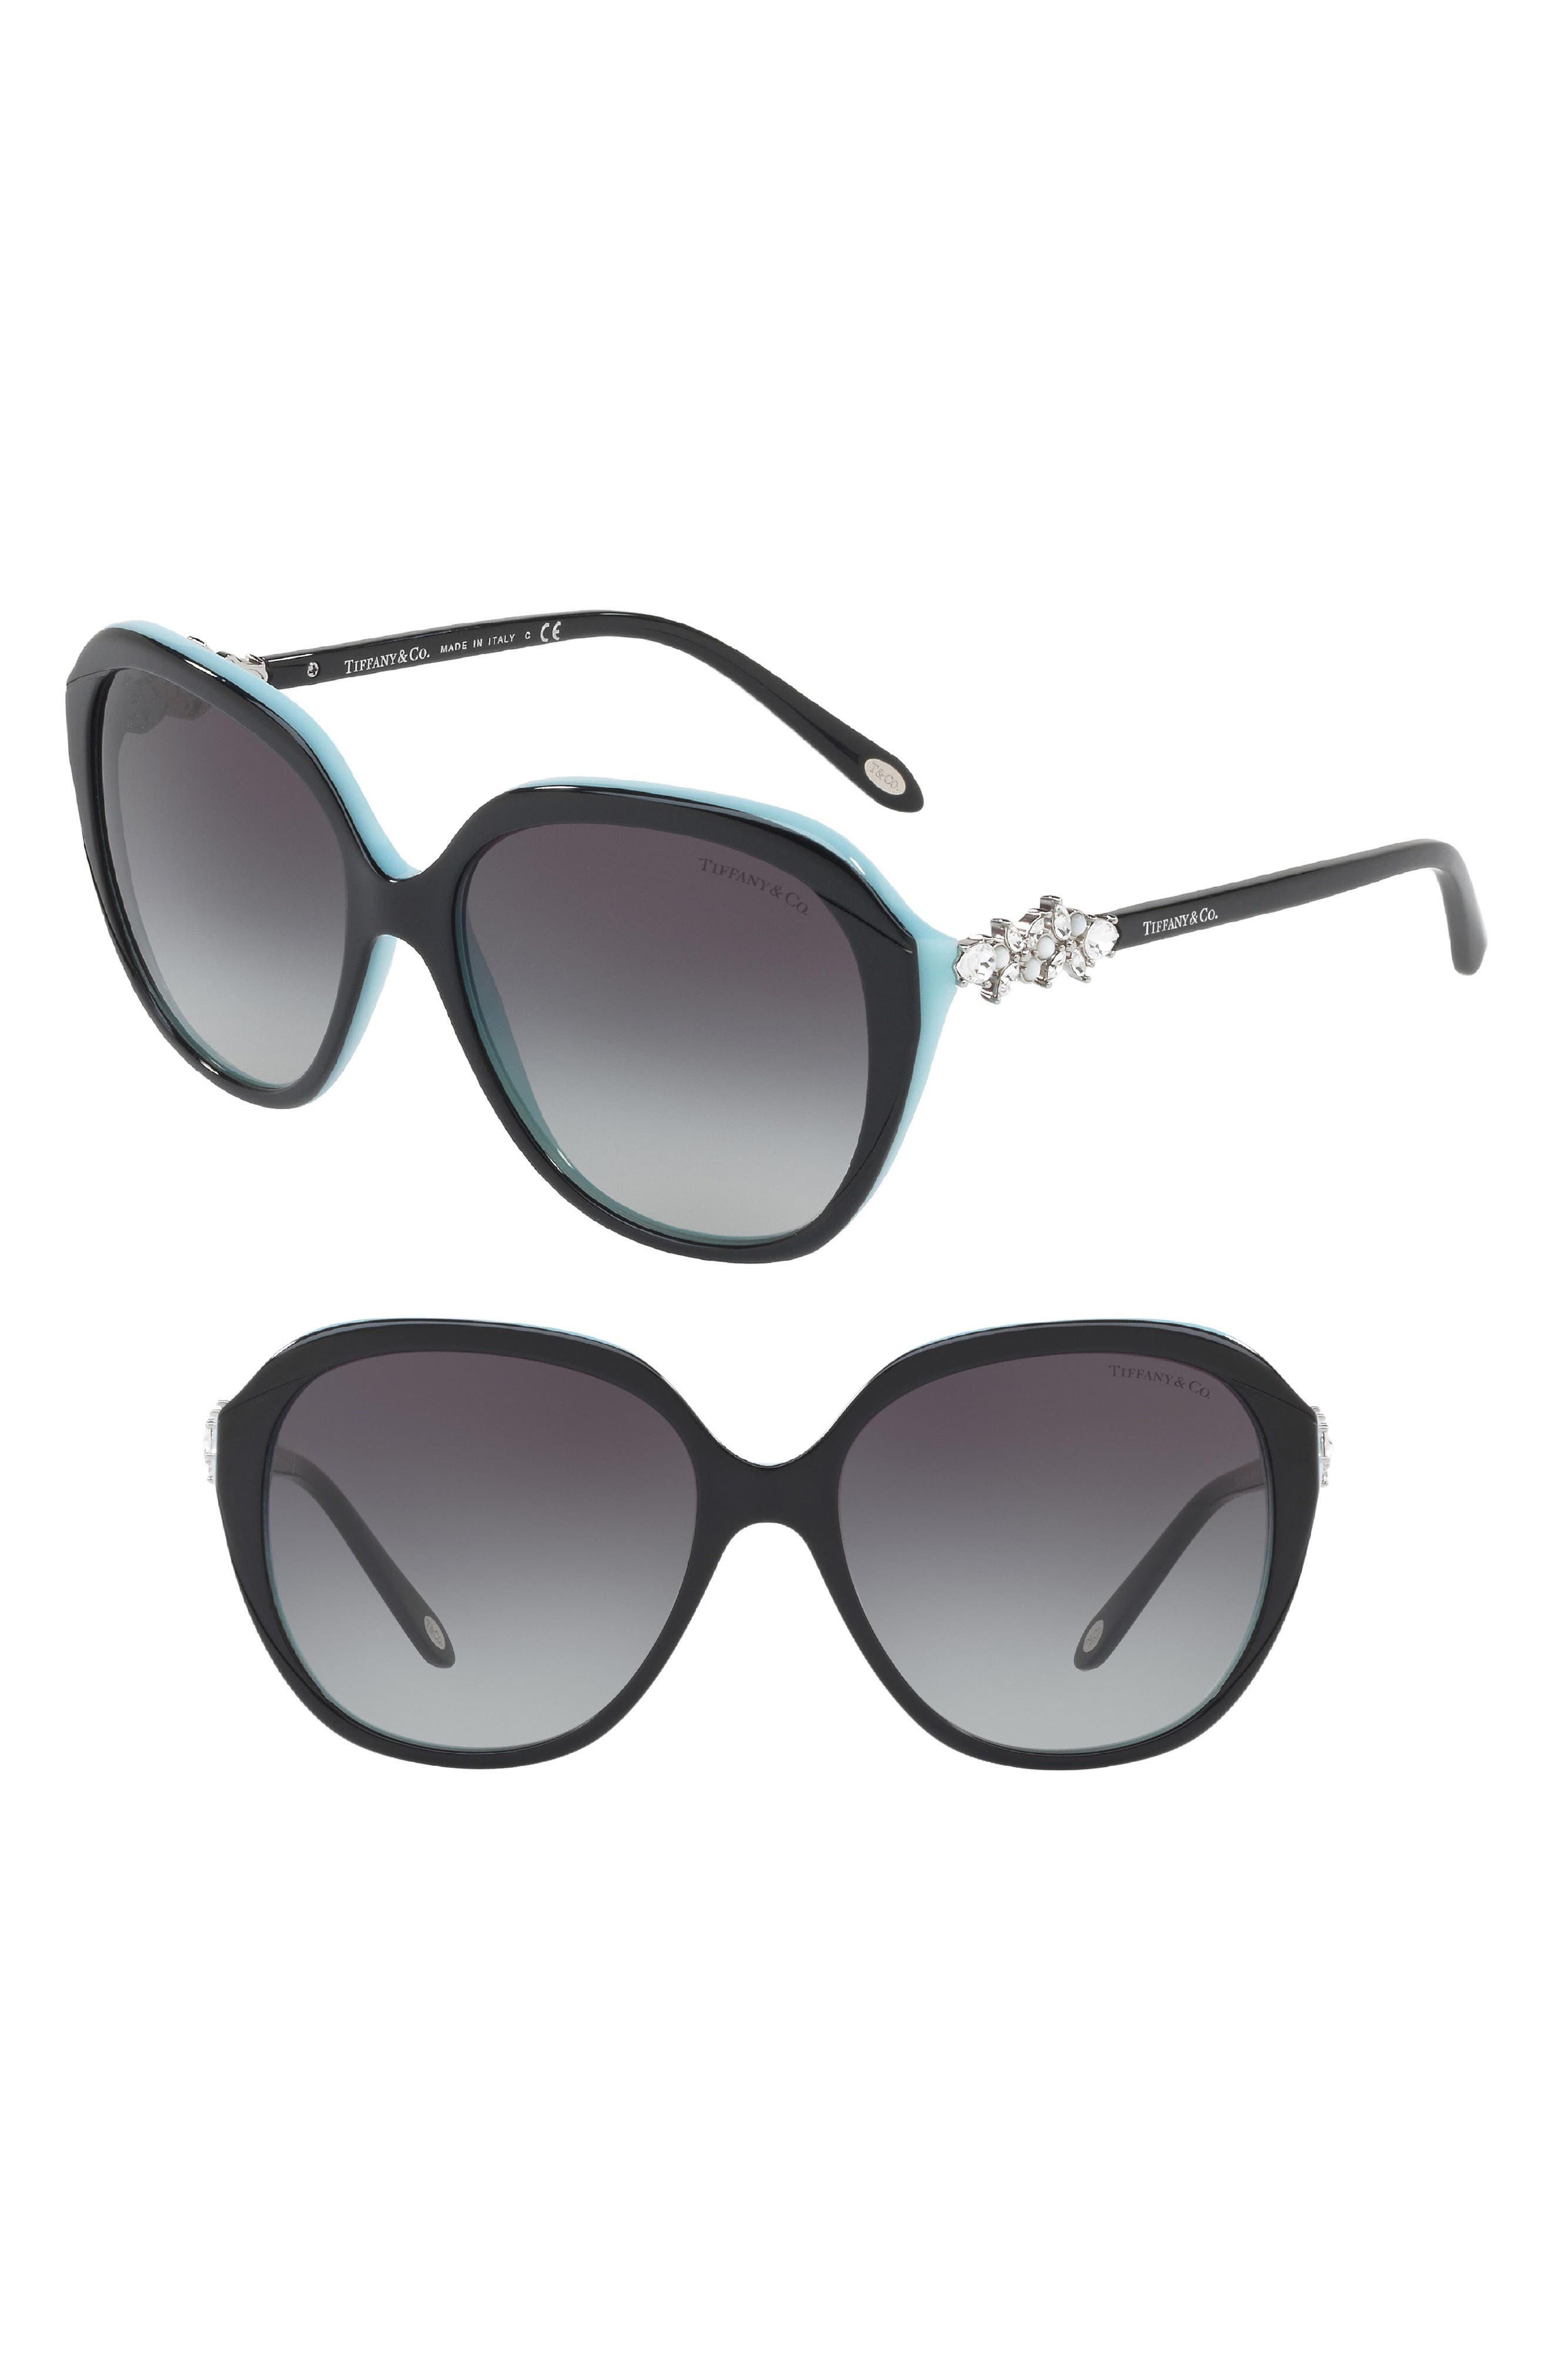 Tiffany & Co. Sunglasses for Women | Nordstrom